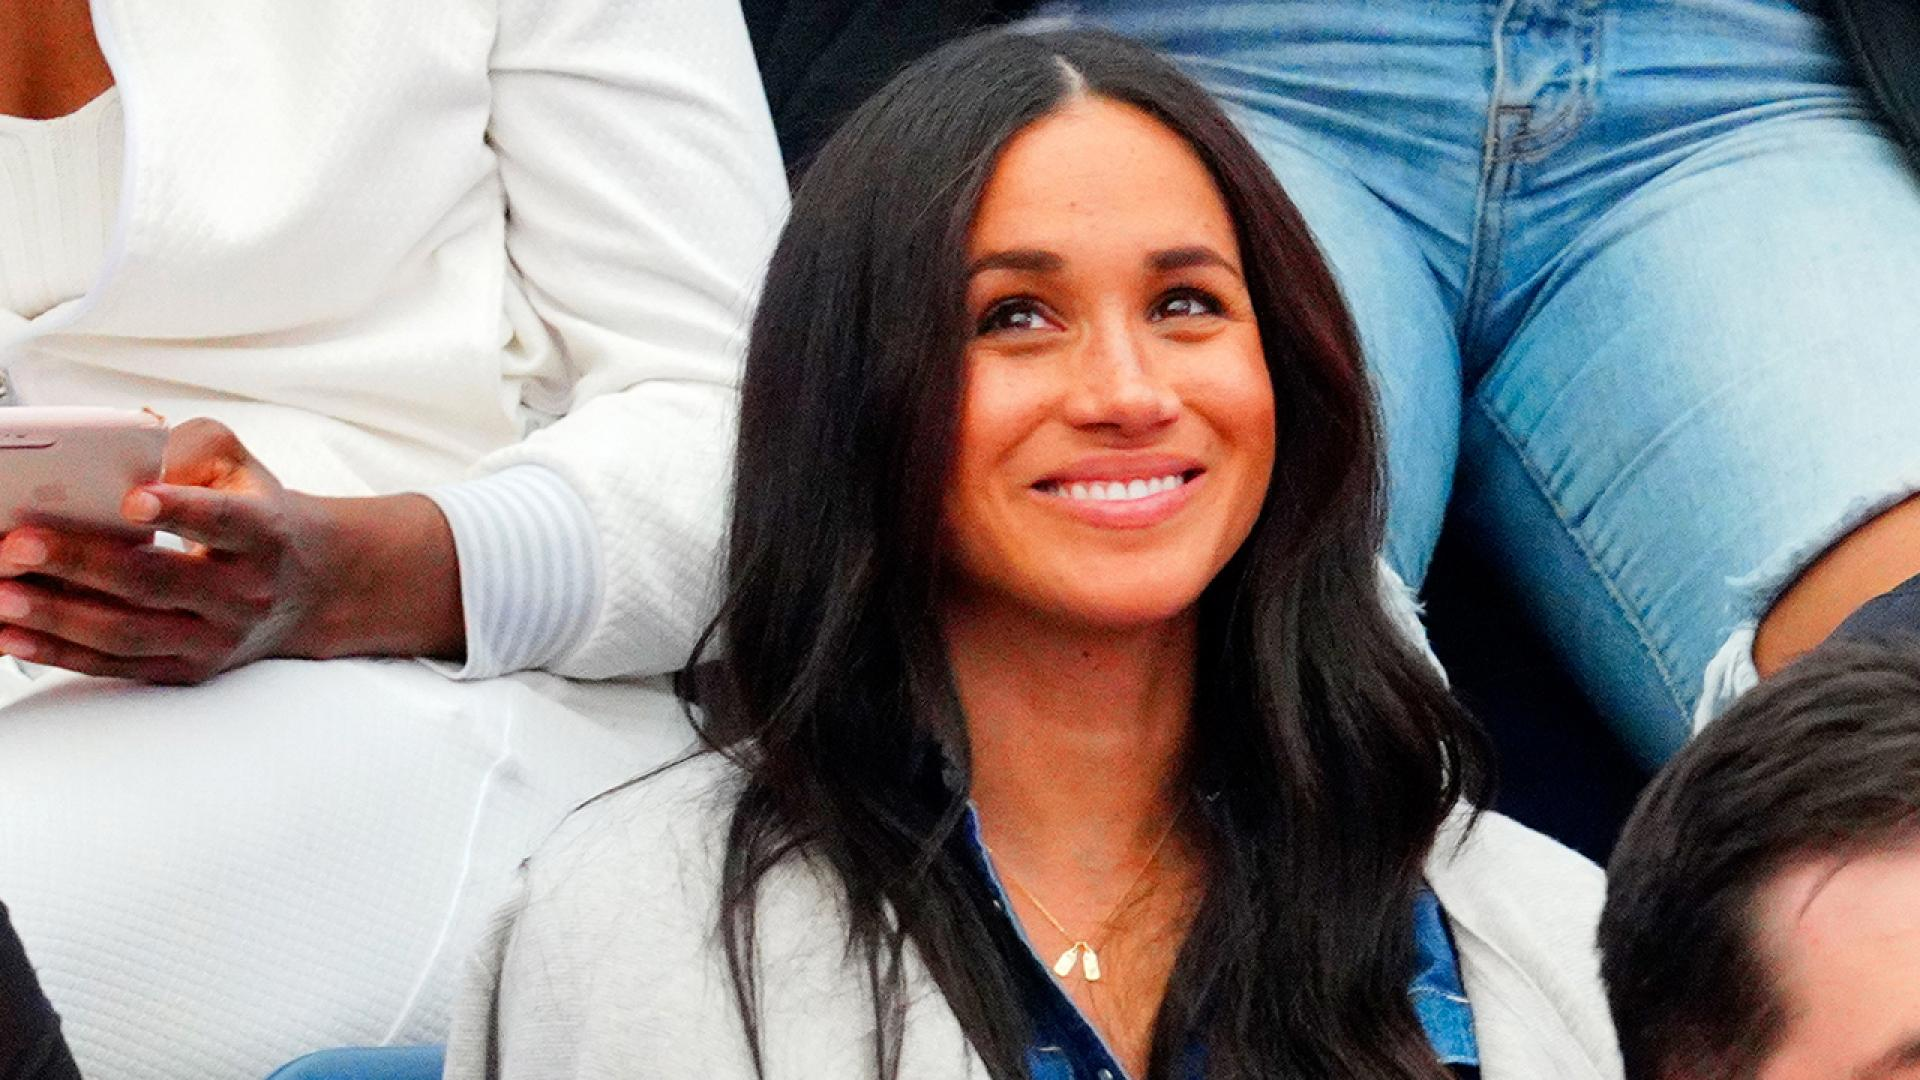 Meghan Markle honored baby Archie and Prince Harry at the U.S. Open.